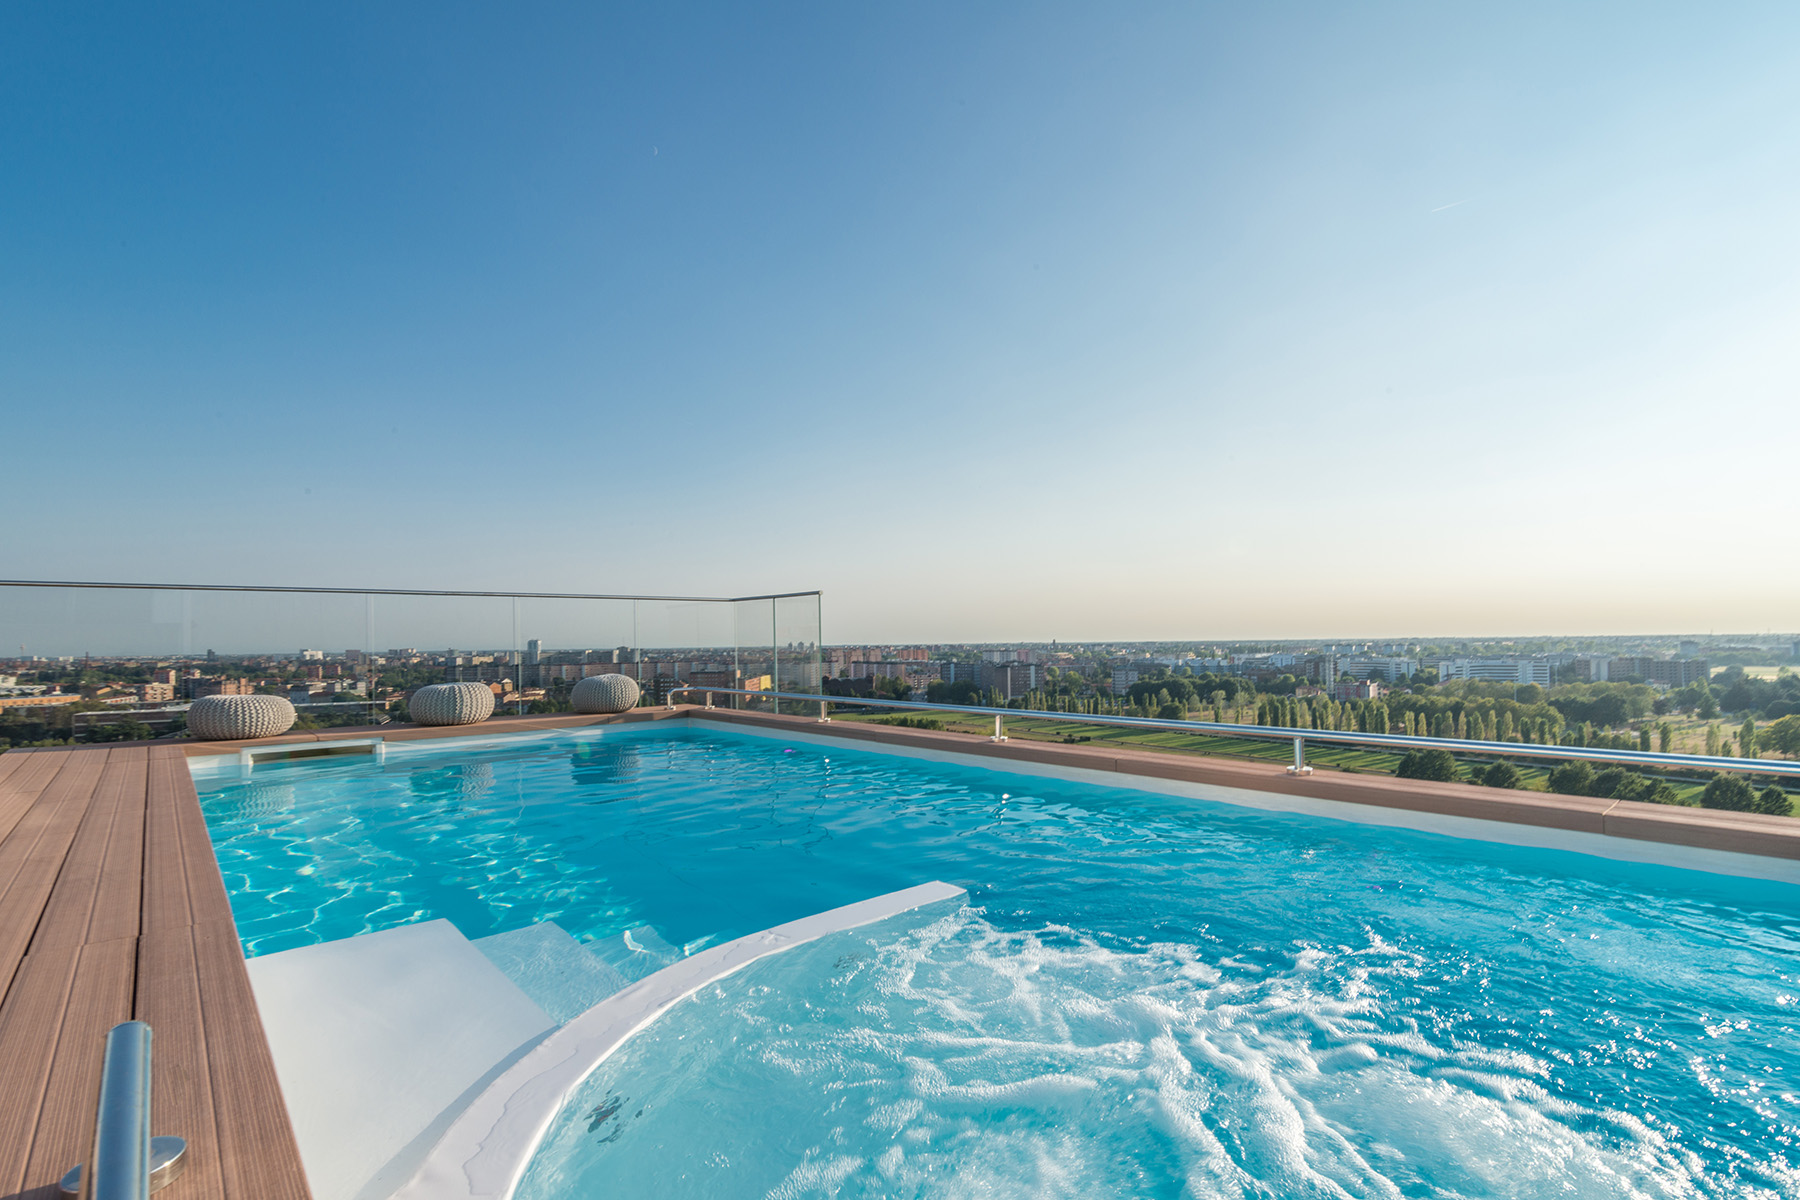 Duplex for Sale at Unique triplex with panoramic pool and views of the skyline and beyond Via Pinerolo Milano, 20121 Italy